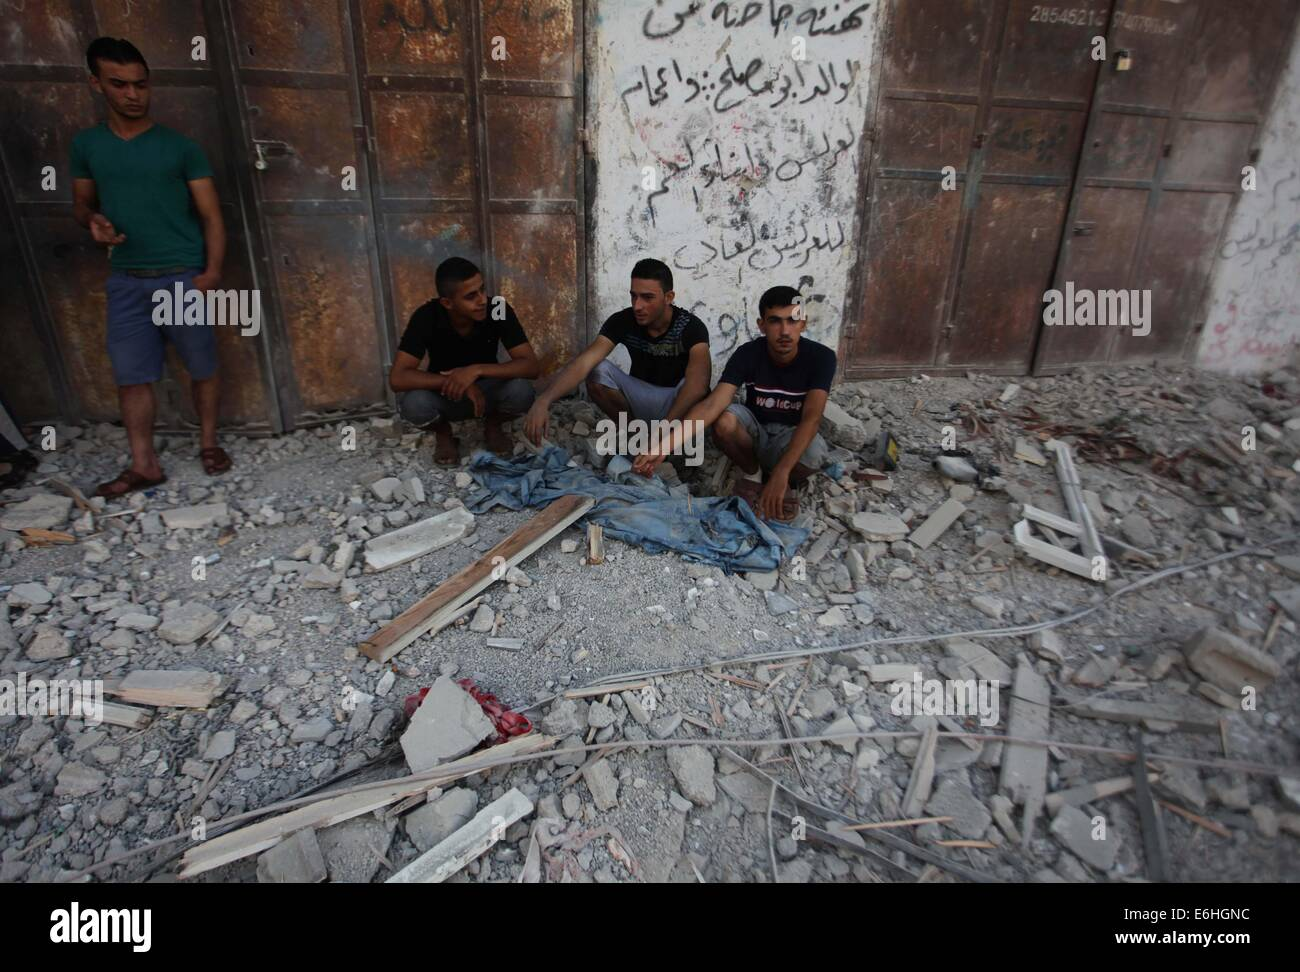 Gaza City, Gaza Strip, Palestinian Territory. 24th Aug, 2014. Palestinians sit on the remains of a house, which - Stock Image